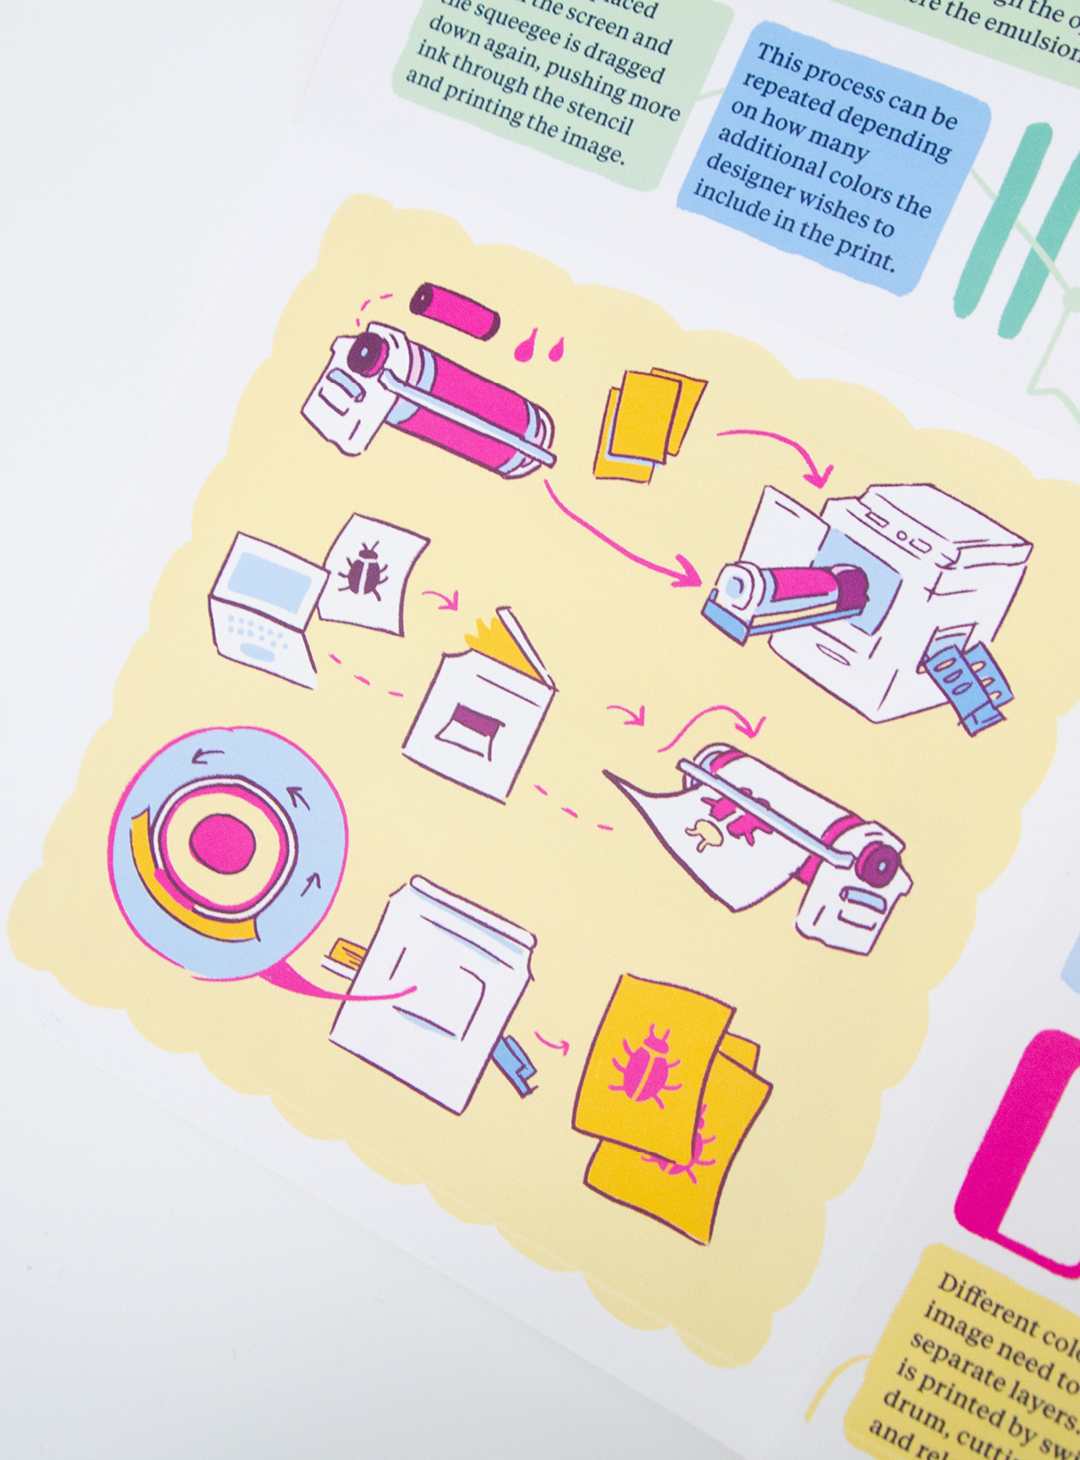 Detail shot of the Risograph printing illustration. Set on a yellow back ground, the illustration shows the process of printing, set to a pink color scheme.